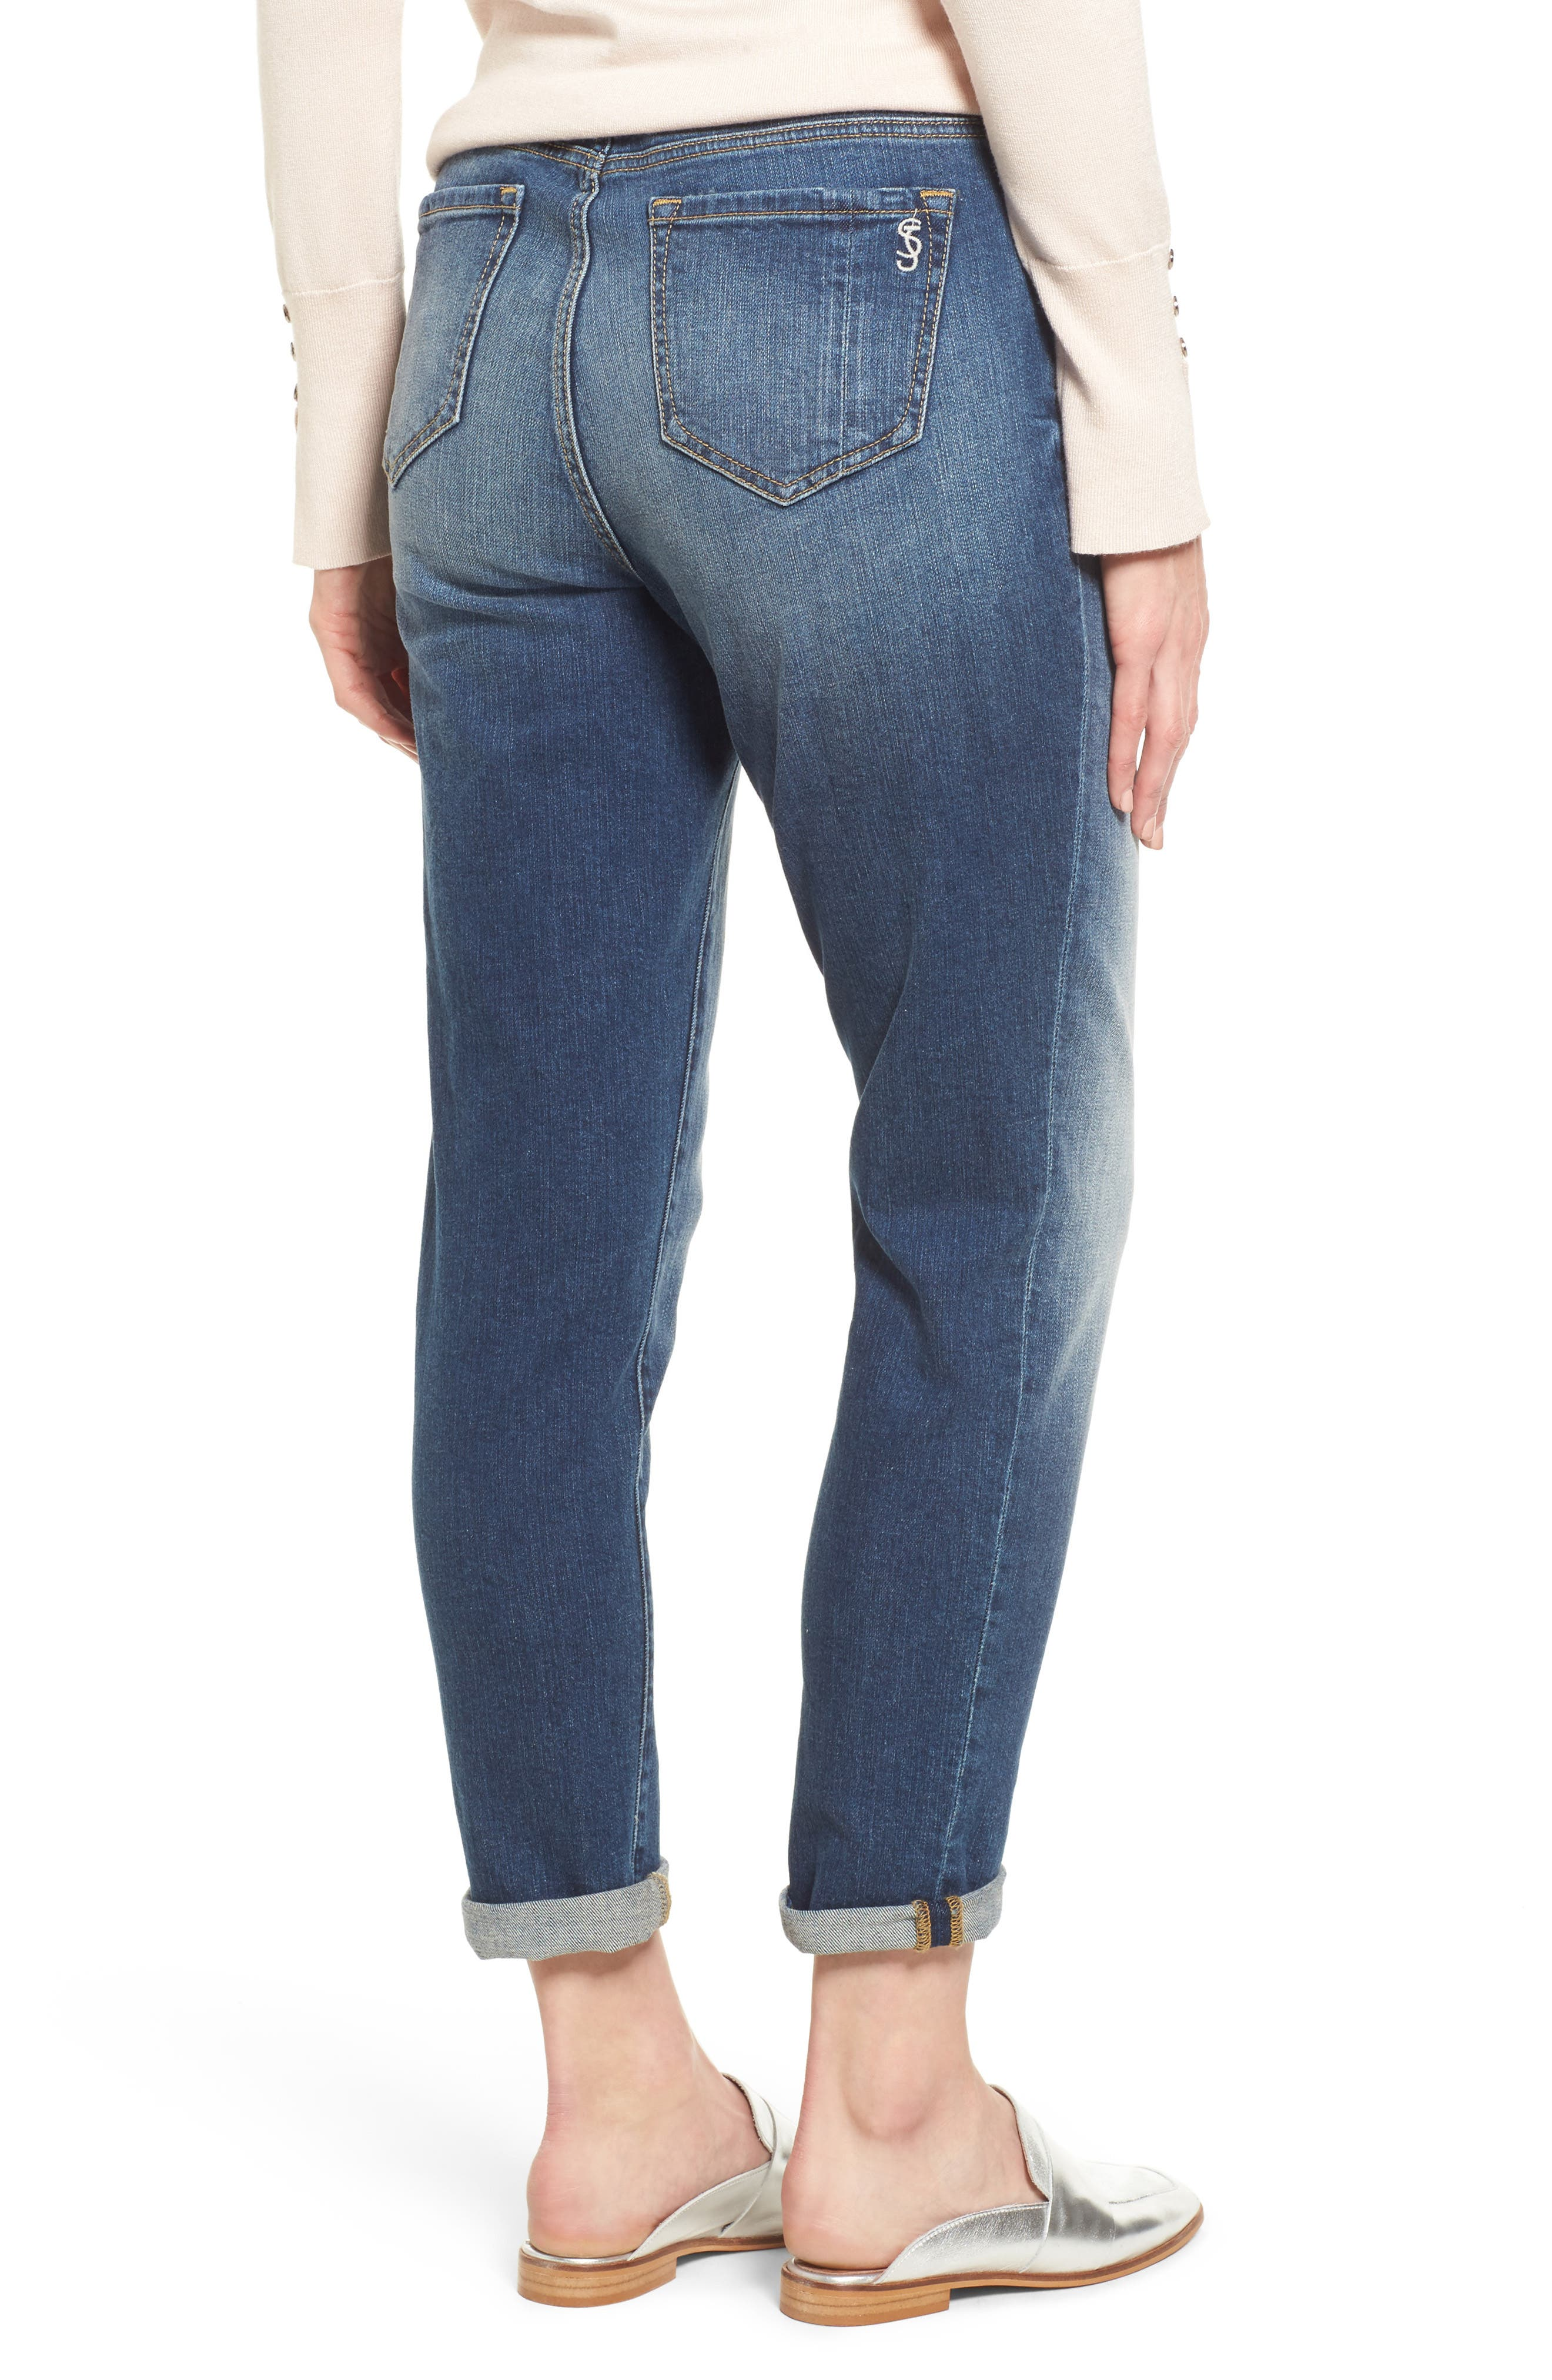 SLINK JEANS,                             Rolled Boyfriend Jeans,                             Alternate thumbnail 2, color,                             VAL